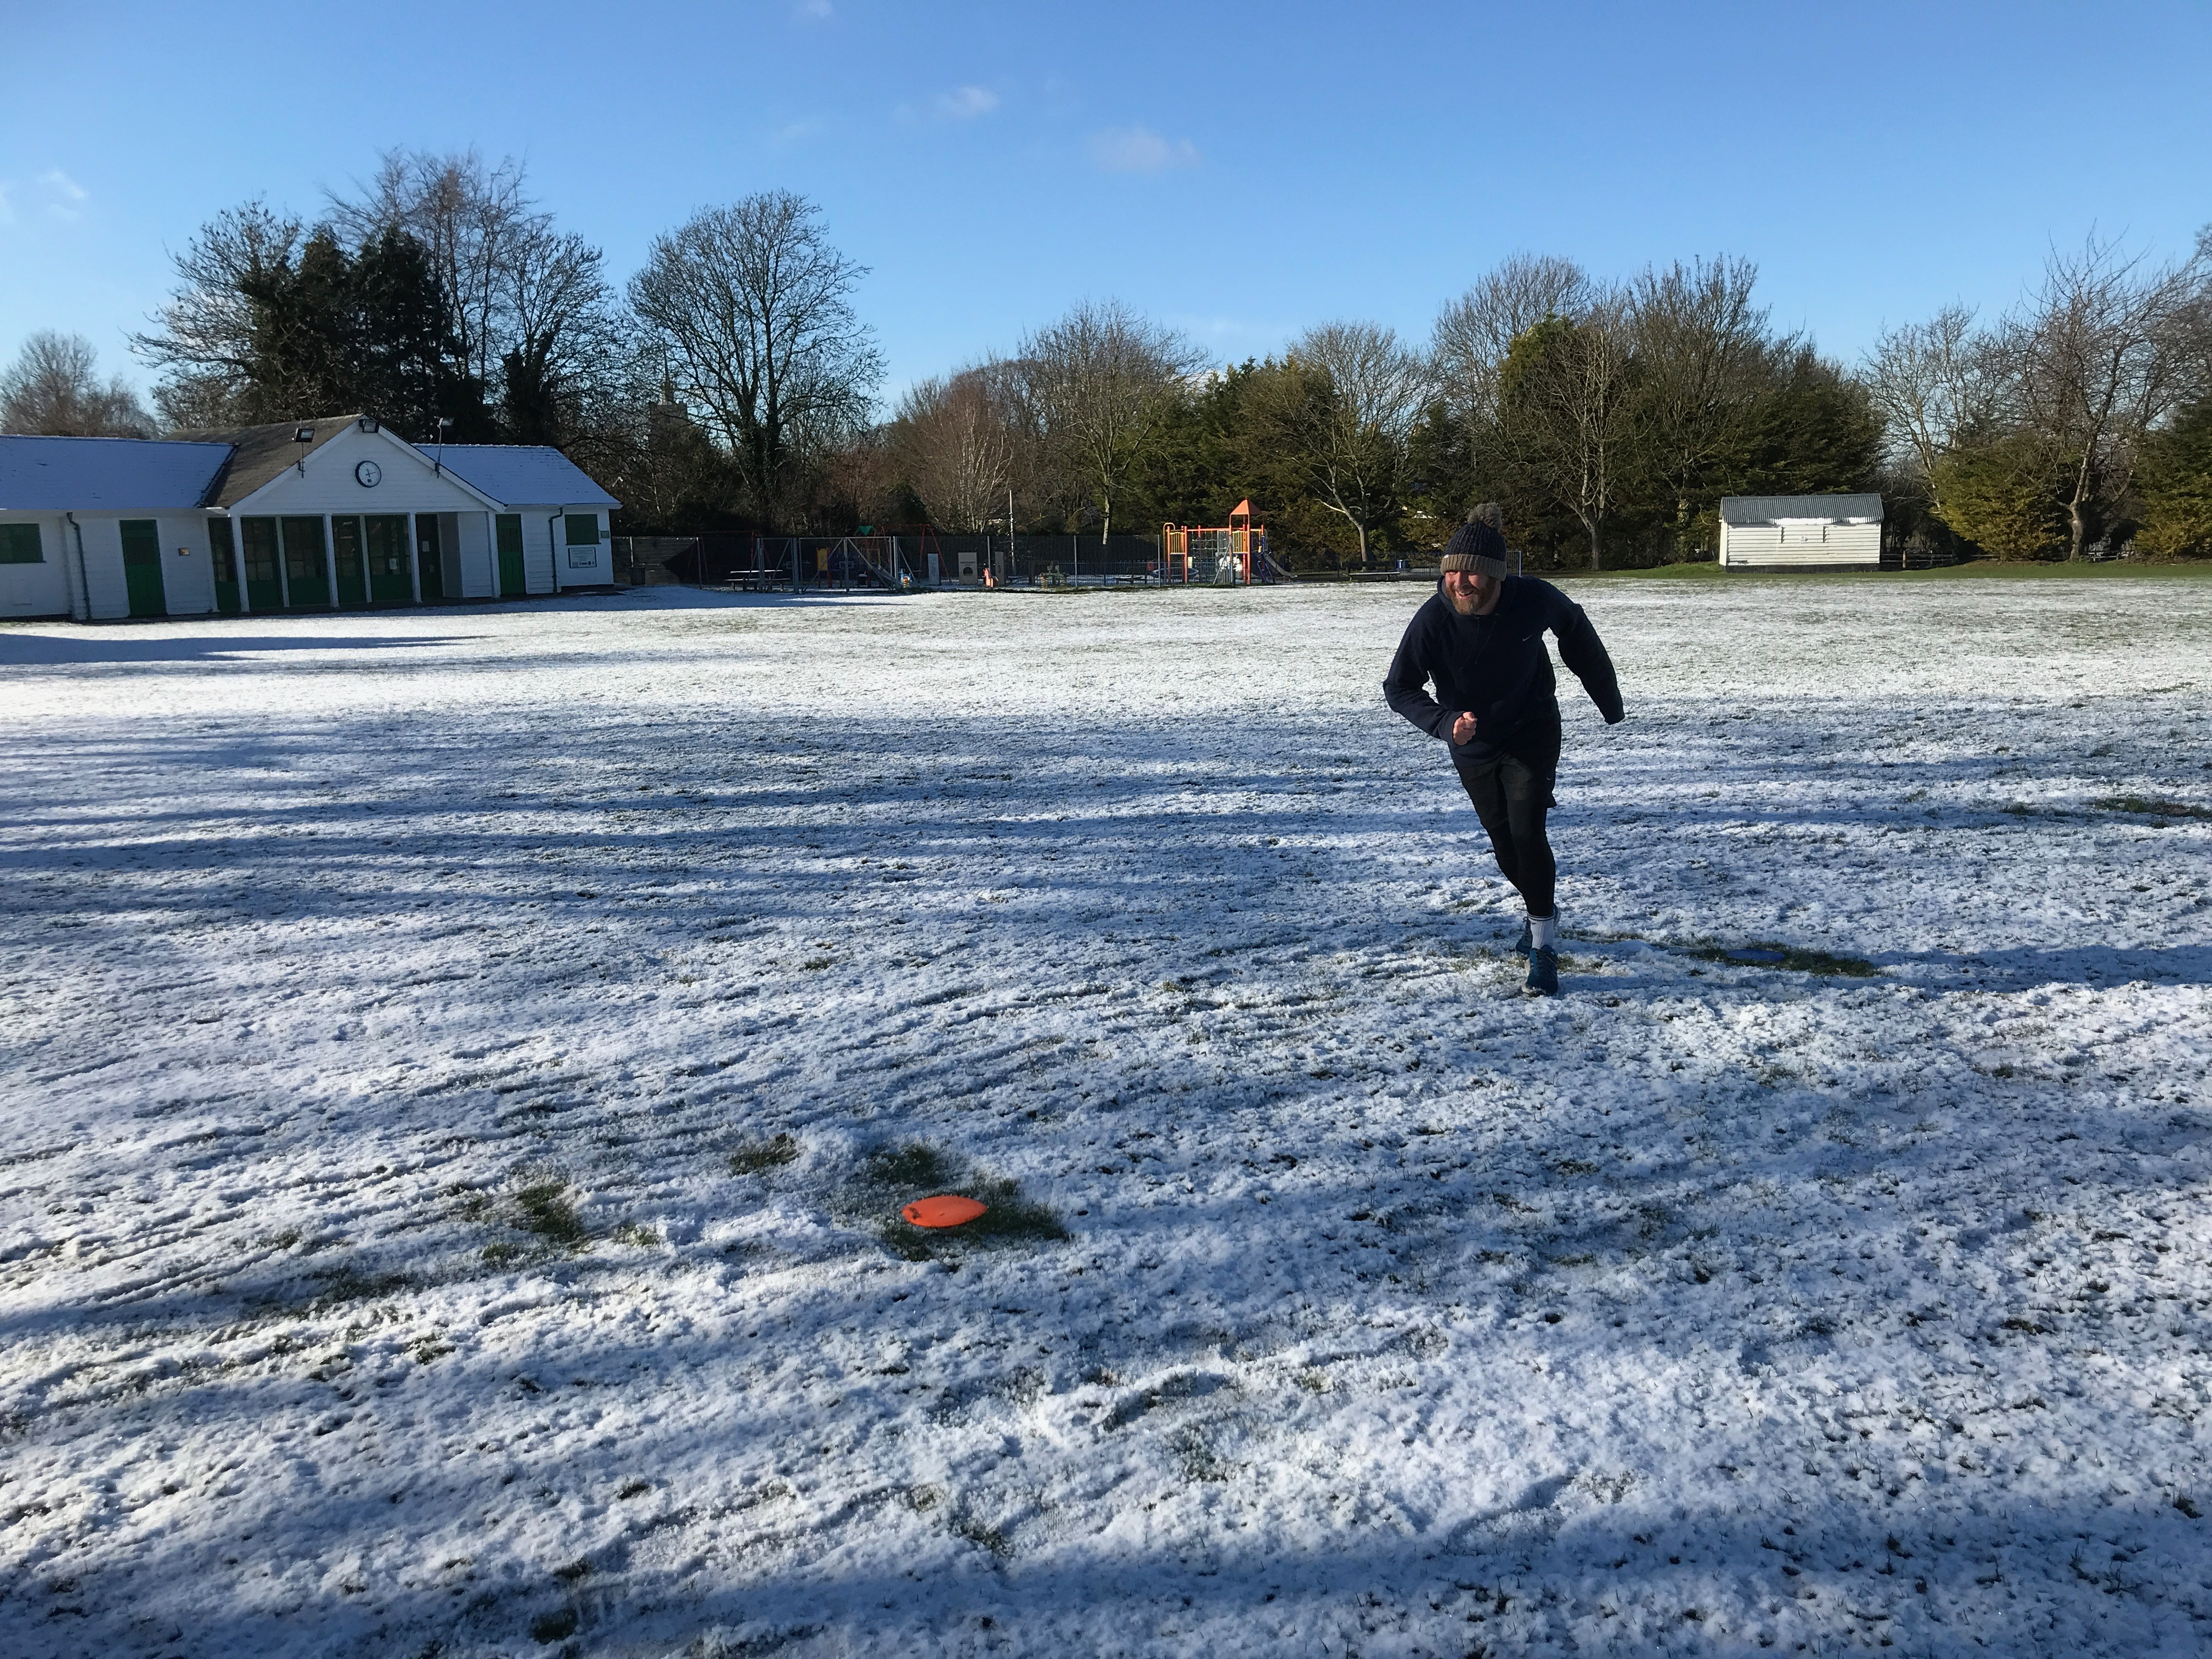 Shuttle Run on the snow